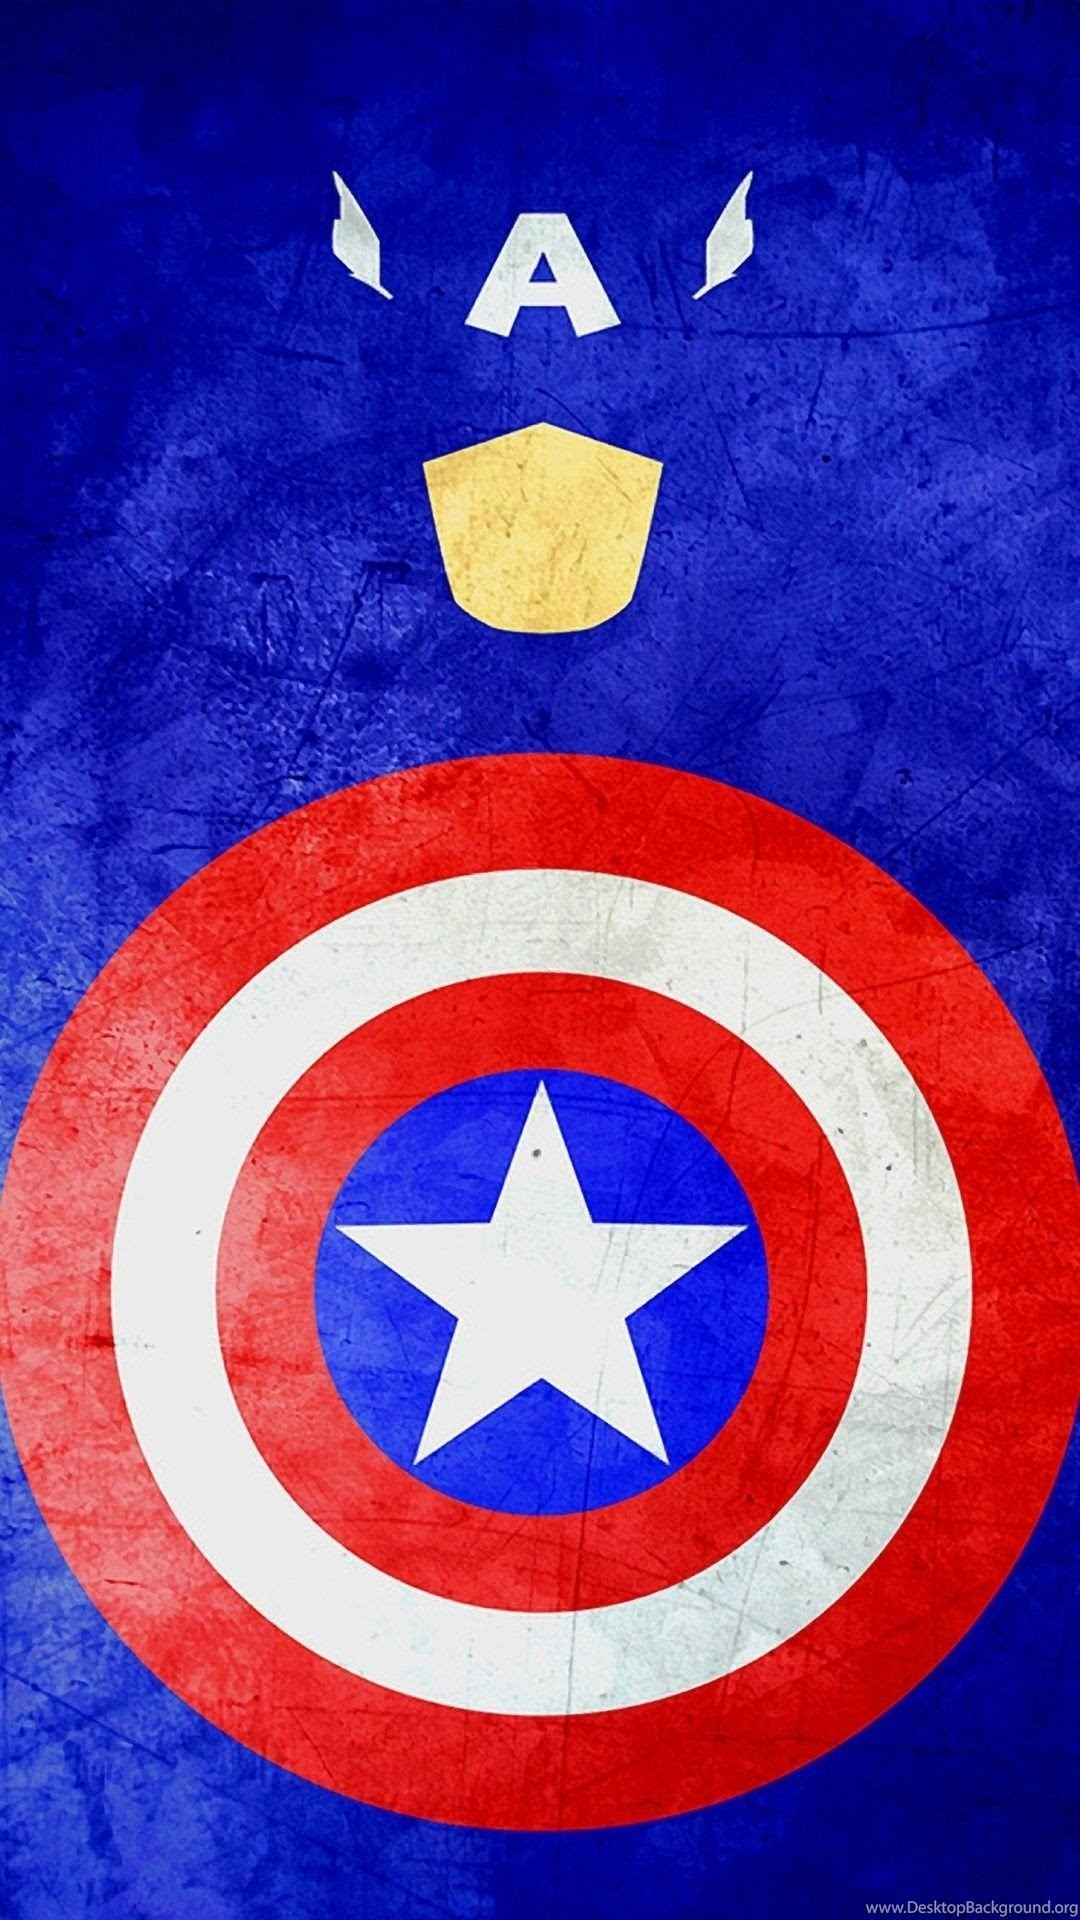 Unduh 660 Koleksi Wallpaper Iphone Superhero Gratis